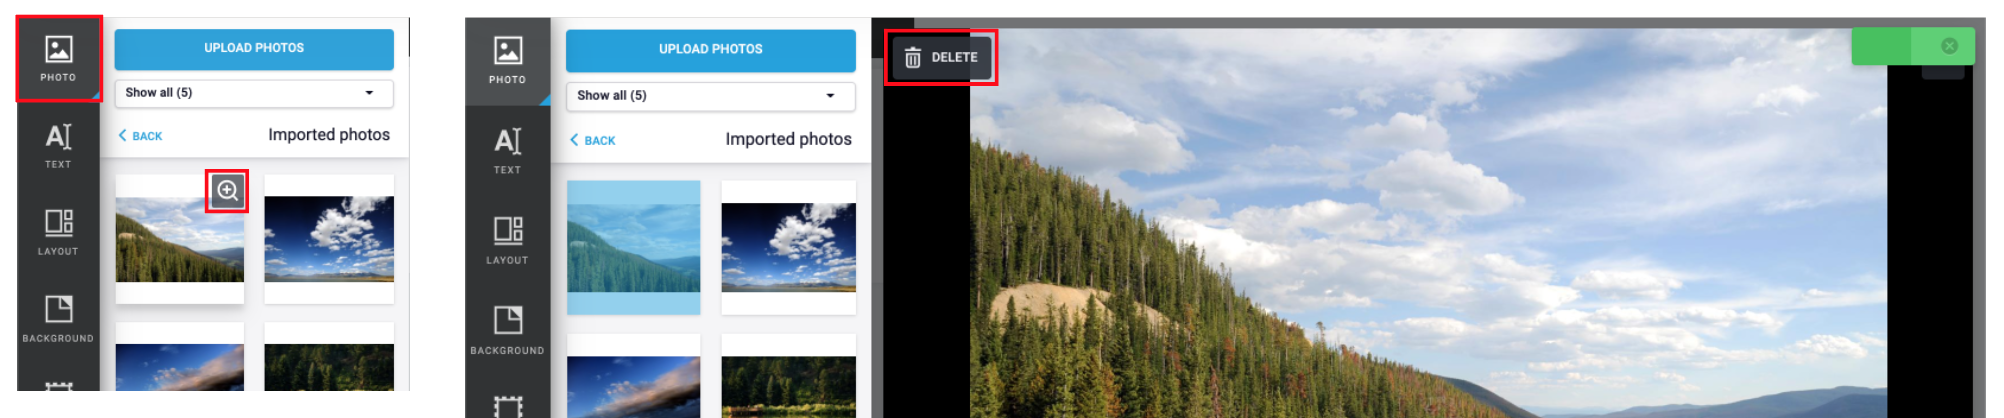 Click Photo > Zoom / Plus Icon > Delete to delete images